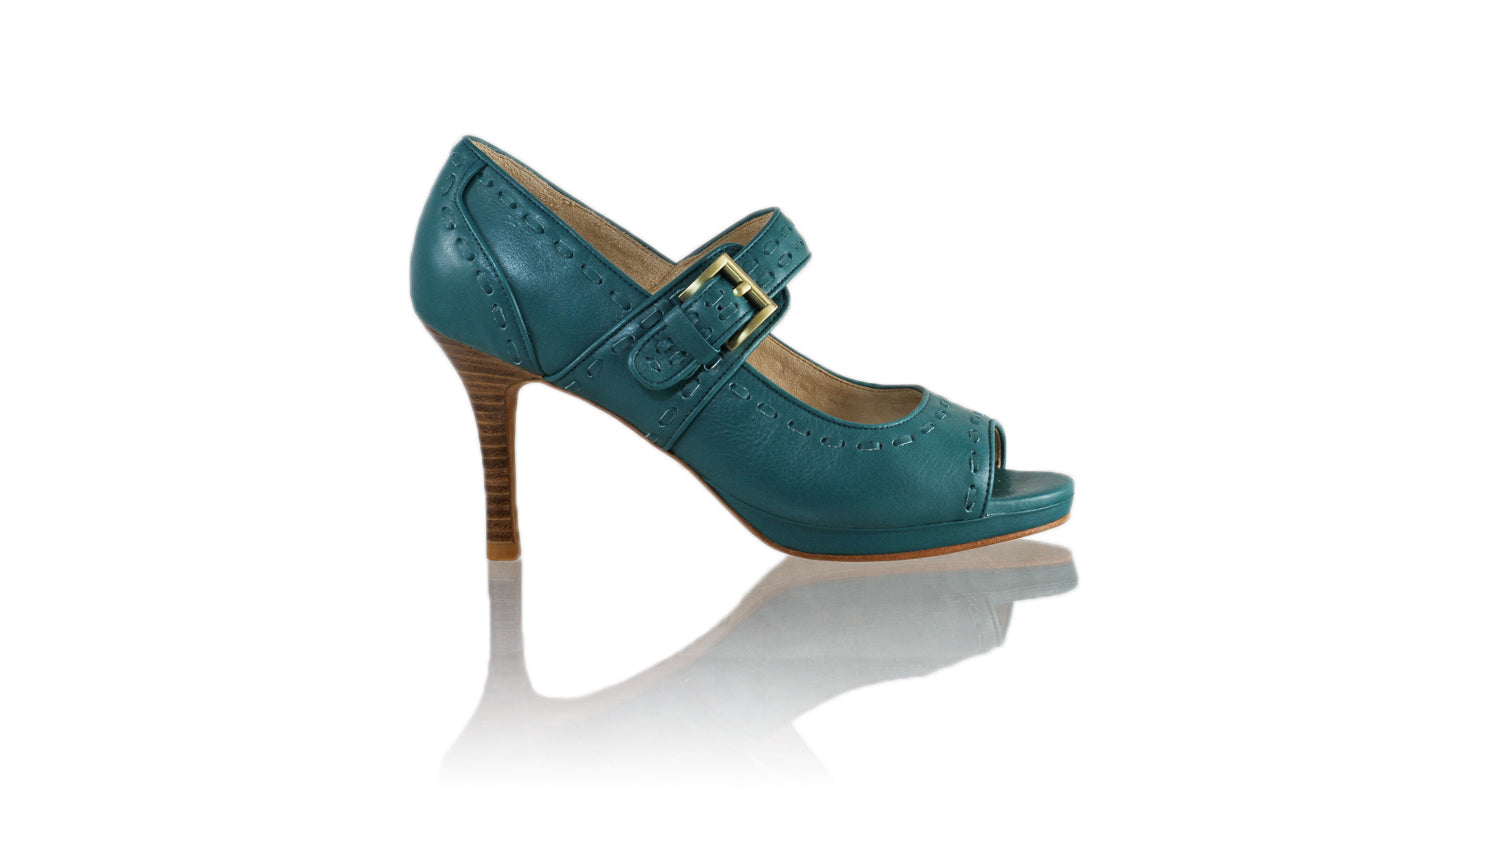 Leather-shoes-Dewi Peeptoe 90mm SH PF - All Emerald-sandals higheel-NILUH DJELANTIK-NILUH DJELANTIK